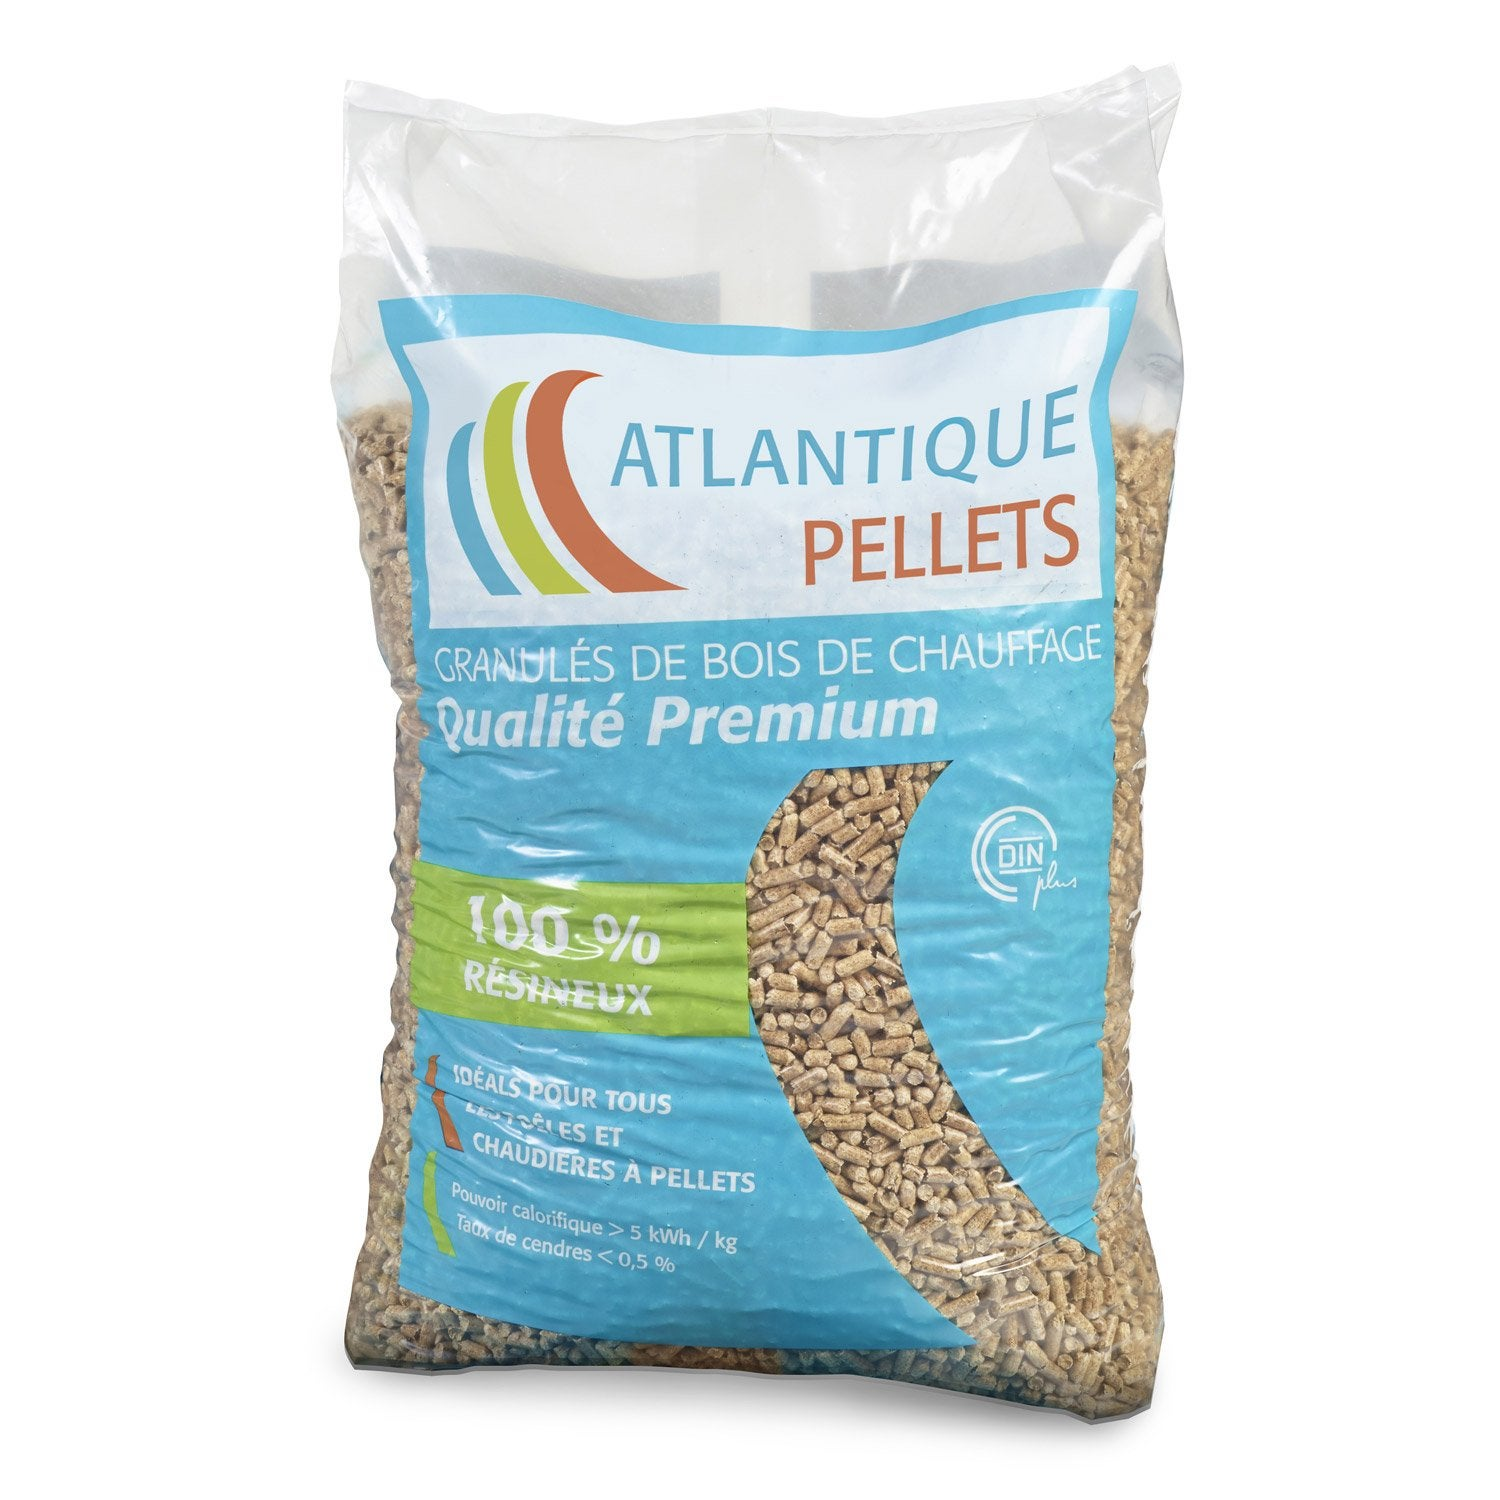 granul s de bois atlantique pellets en sac 15 kg leroy merlin. Black Bedroom Furniture Sets. Home Design Ideas